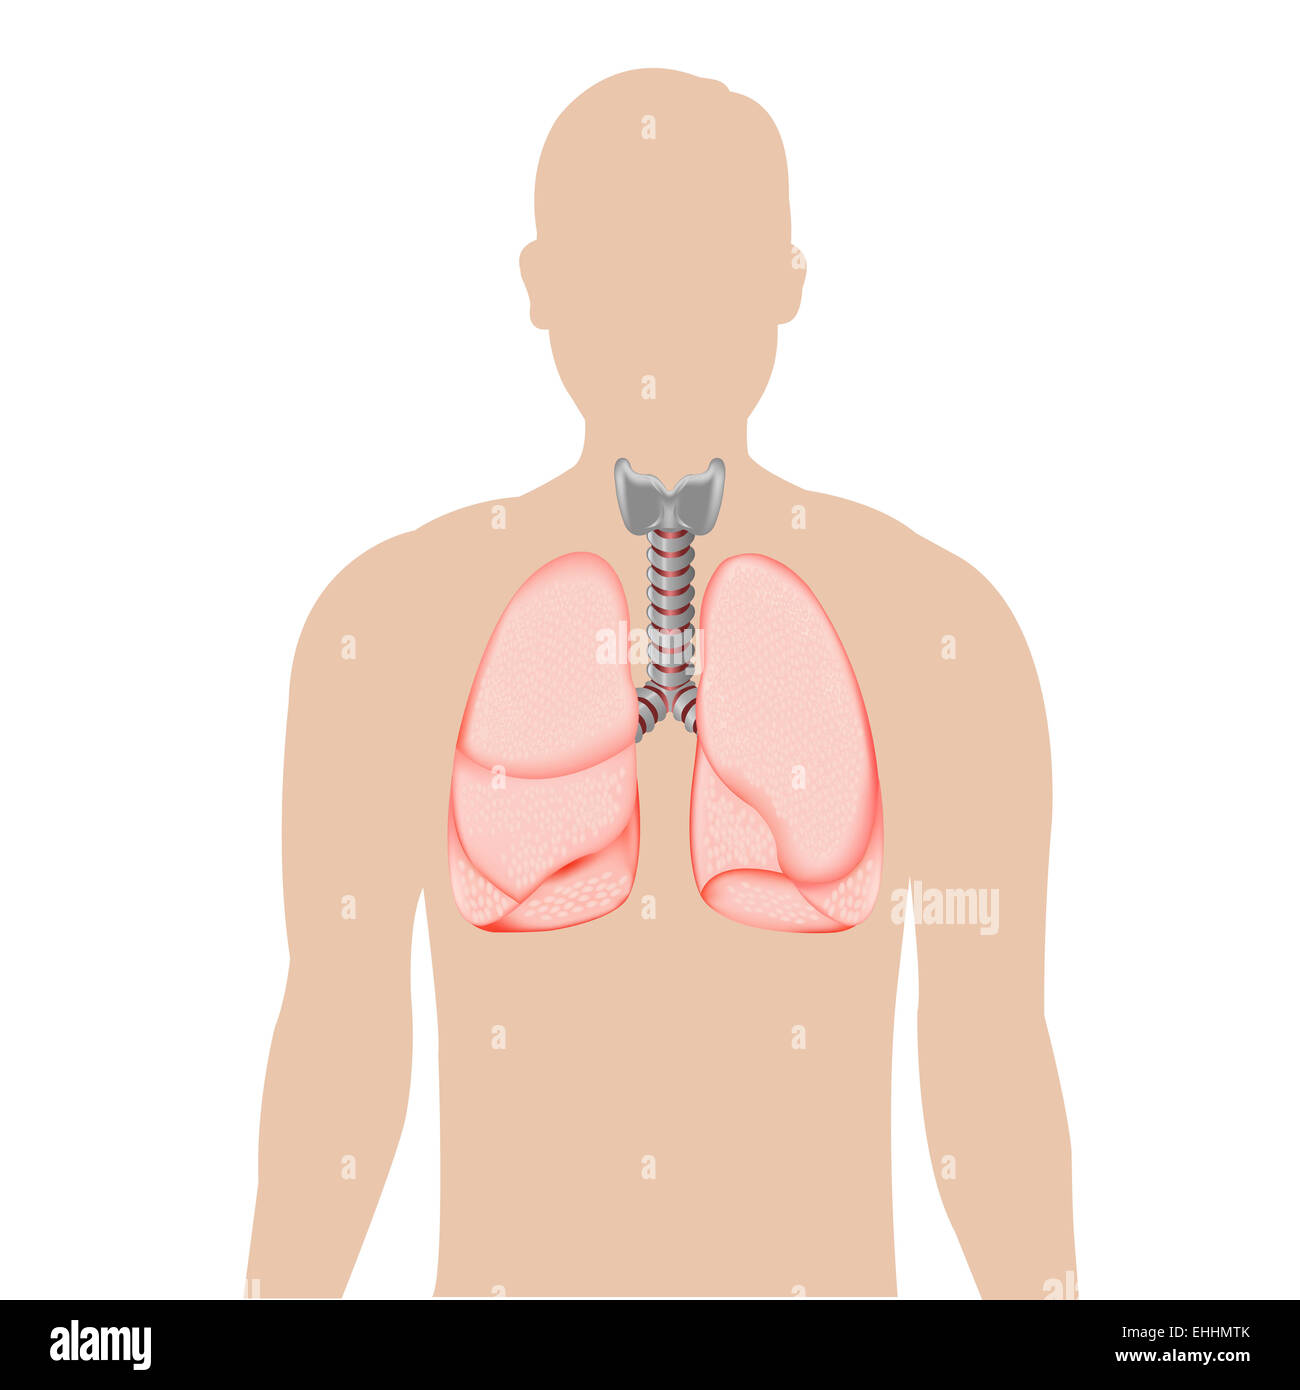 Silhouette Of Person With Lungs - Stock Image